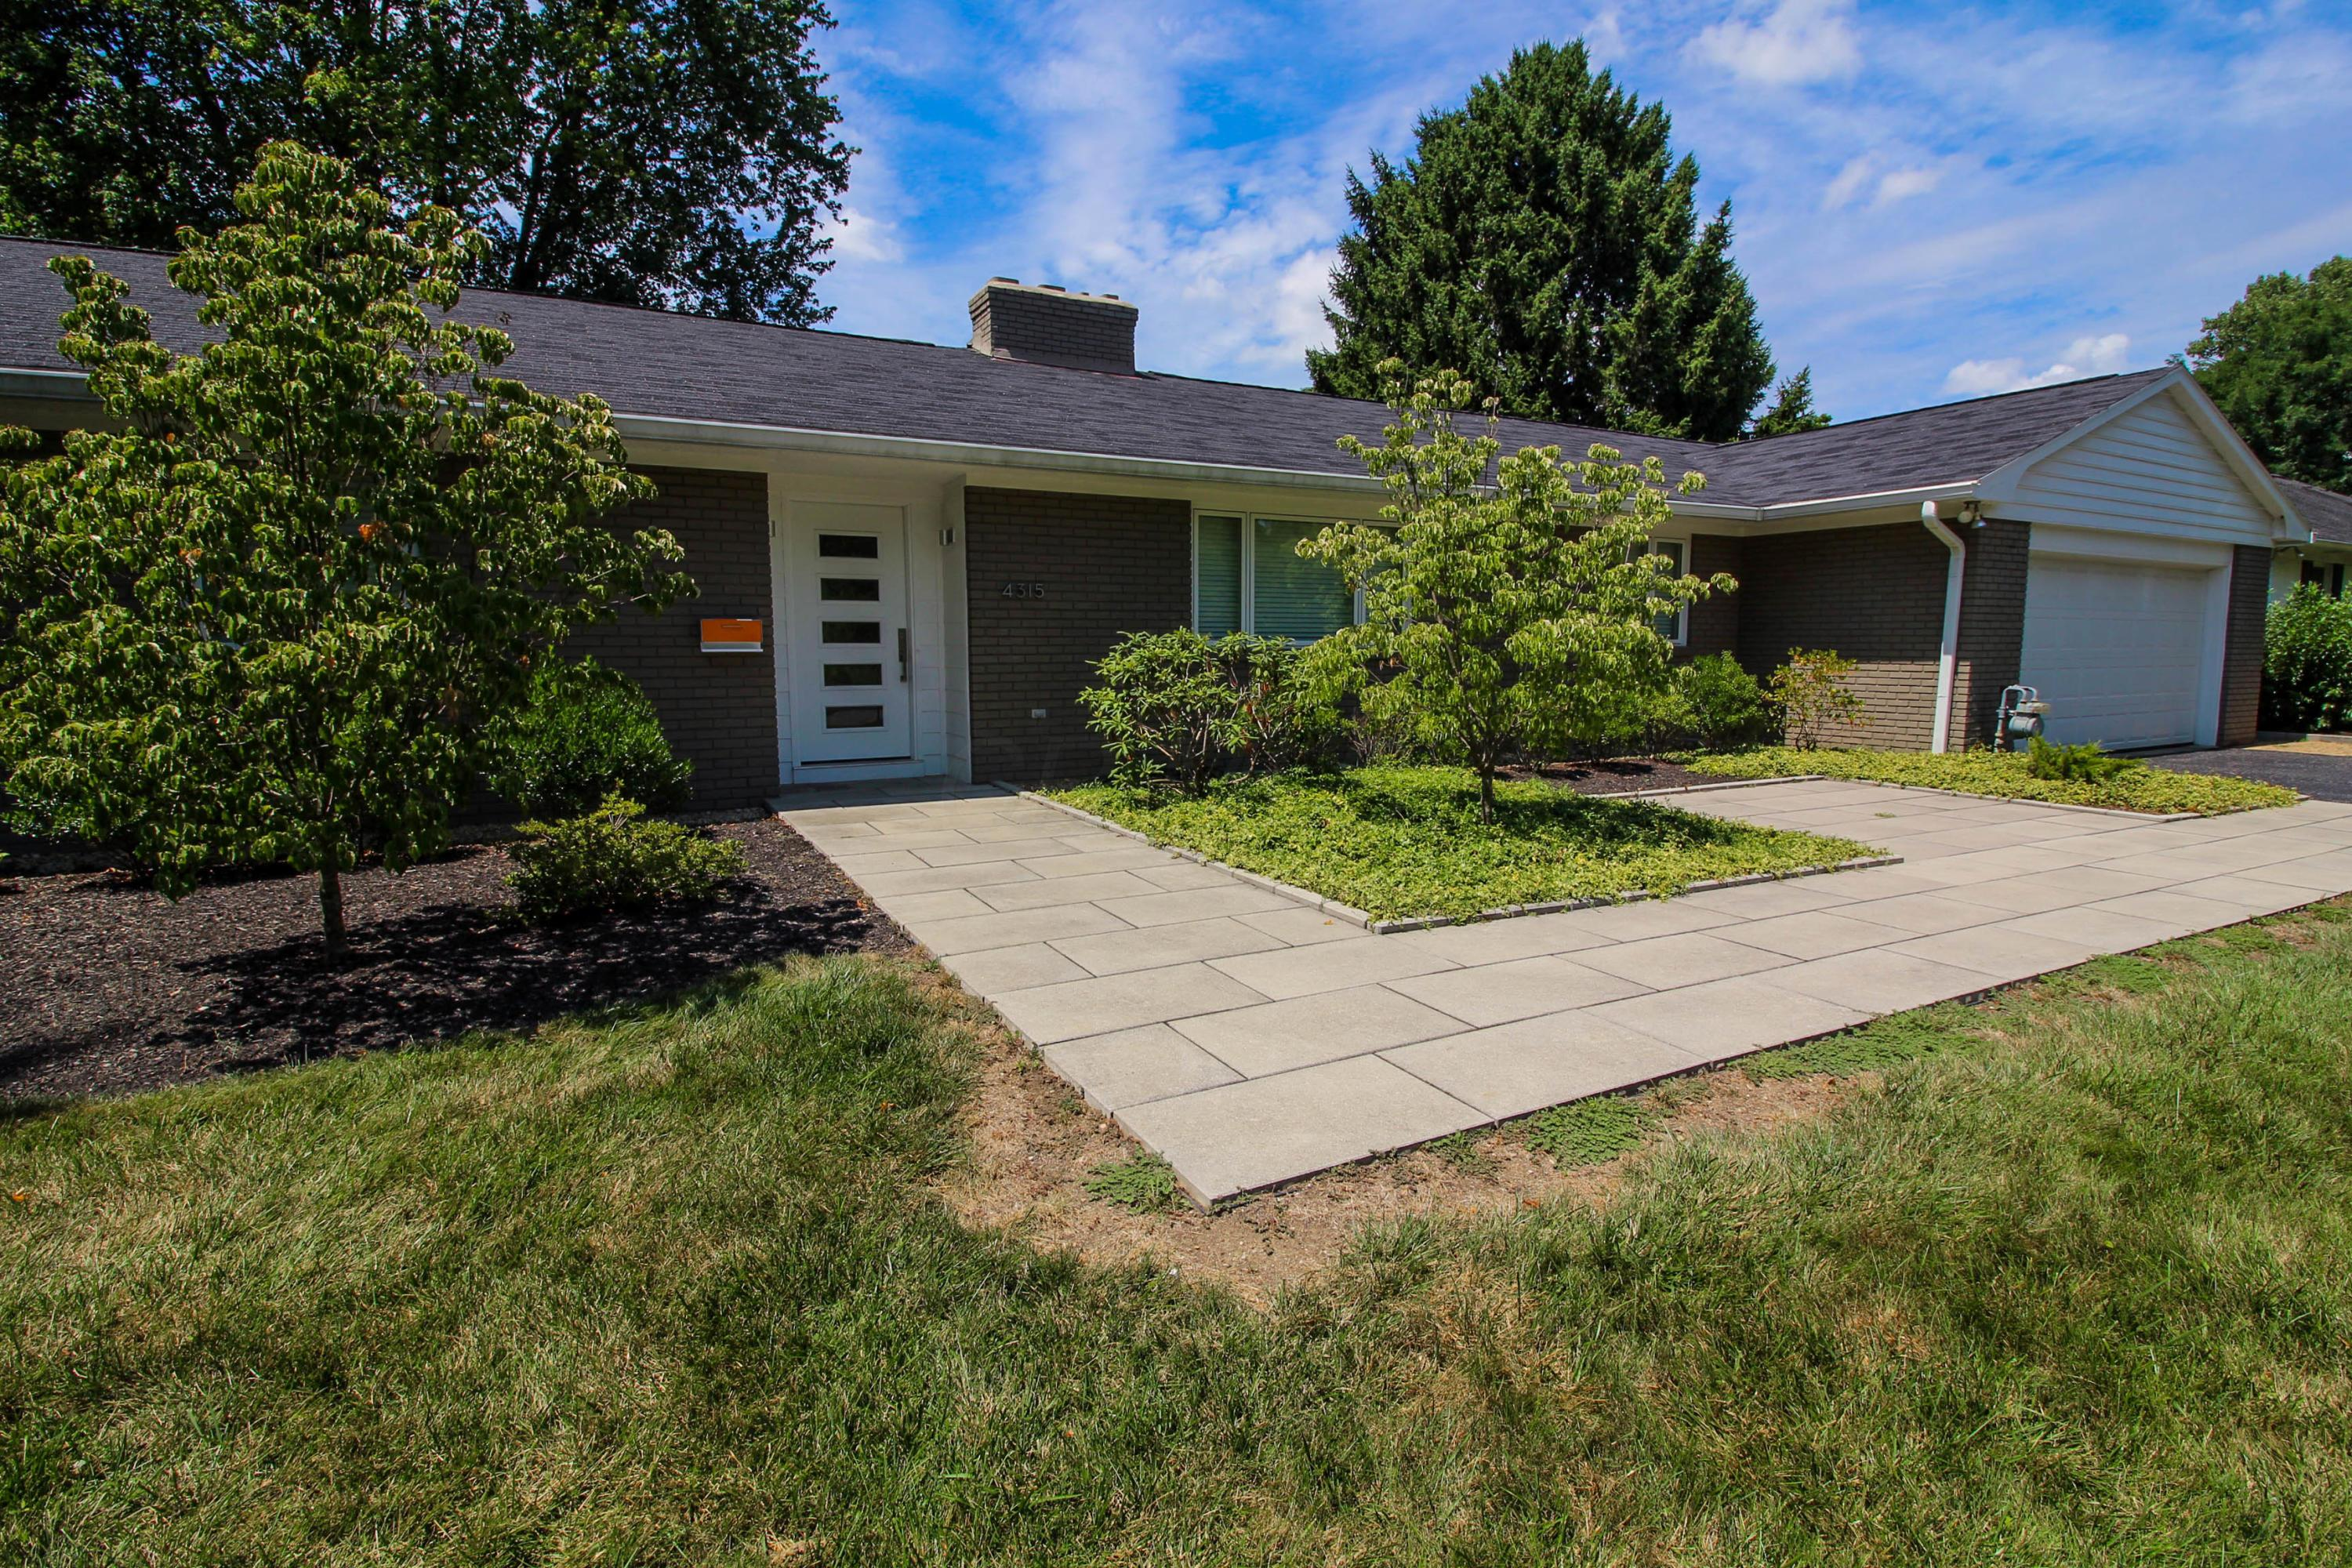 4315 Shelbourne Lane, Columbus, Ohio 43220, 3 Bedrooms Bedrooms, ,2 BathroomsBathrooms,Residential,For Sale,Shelbourne,220025744